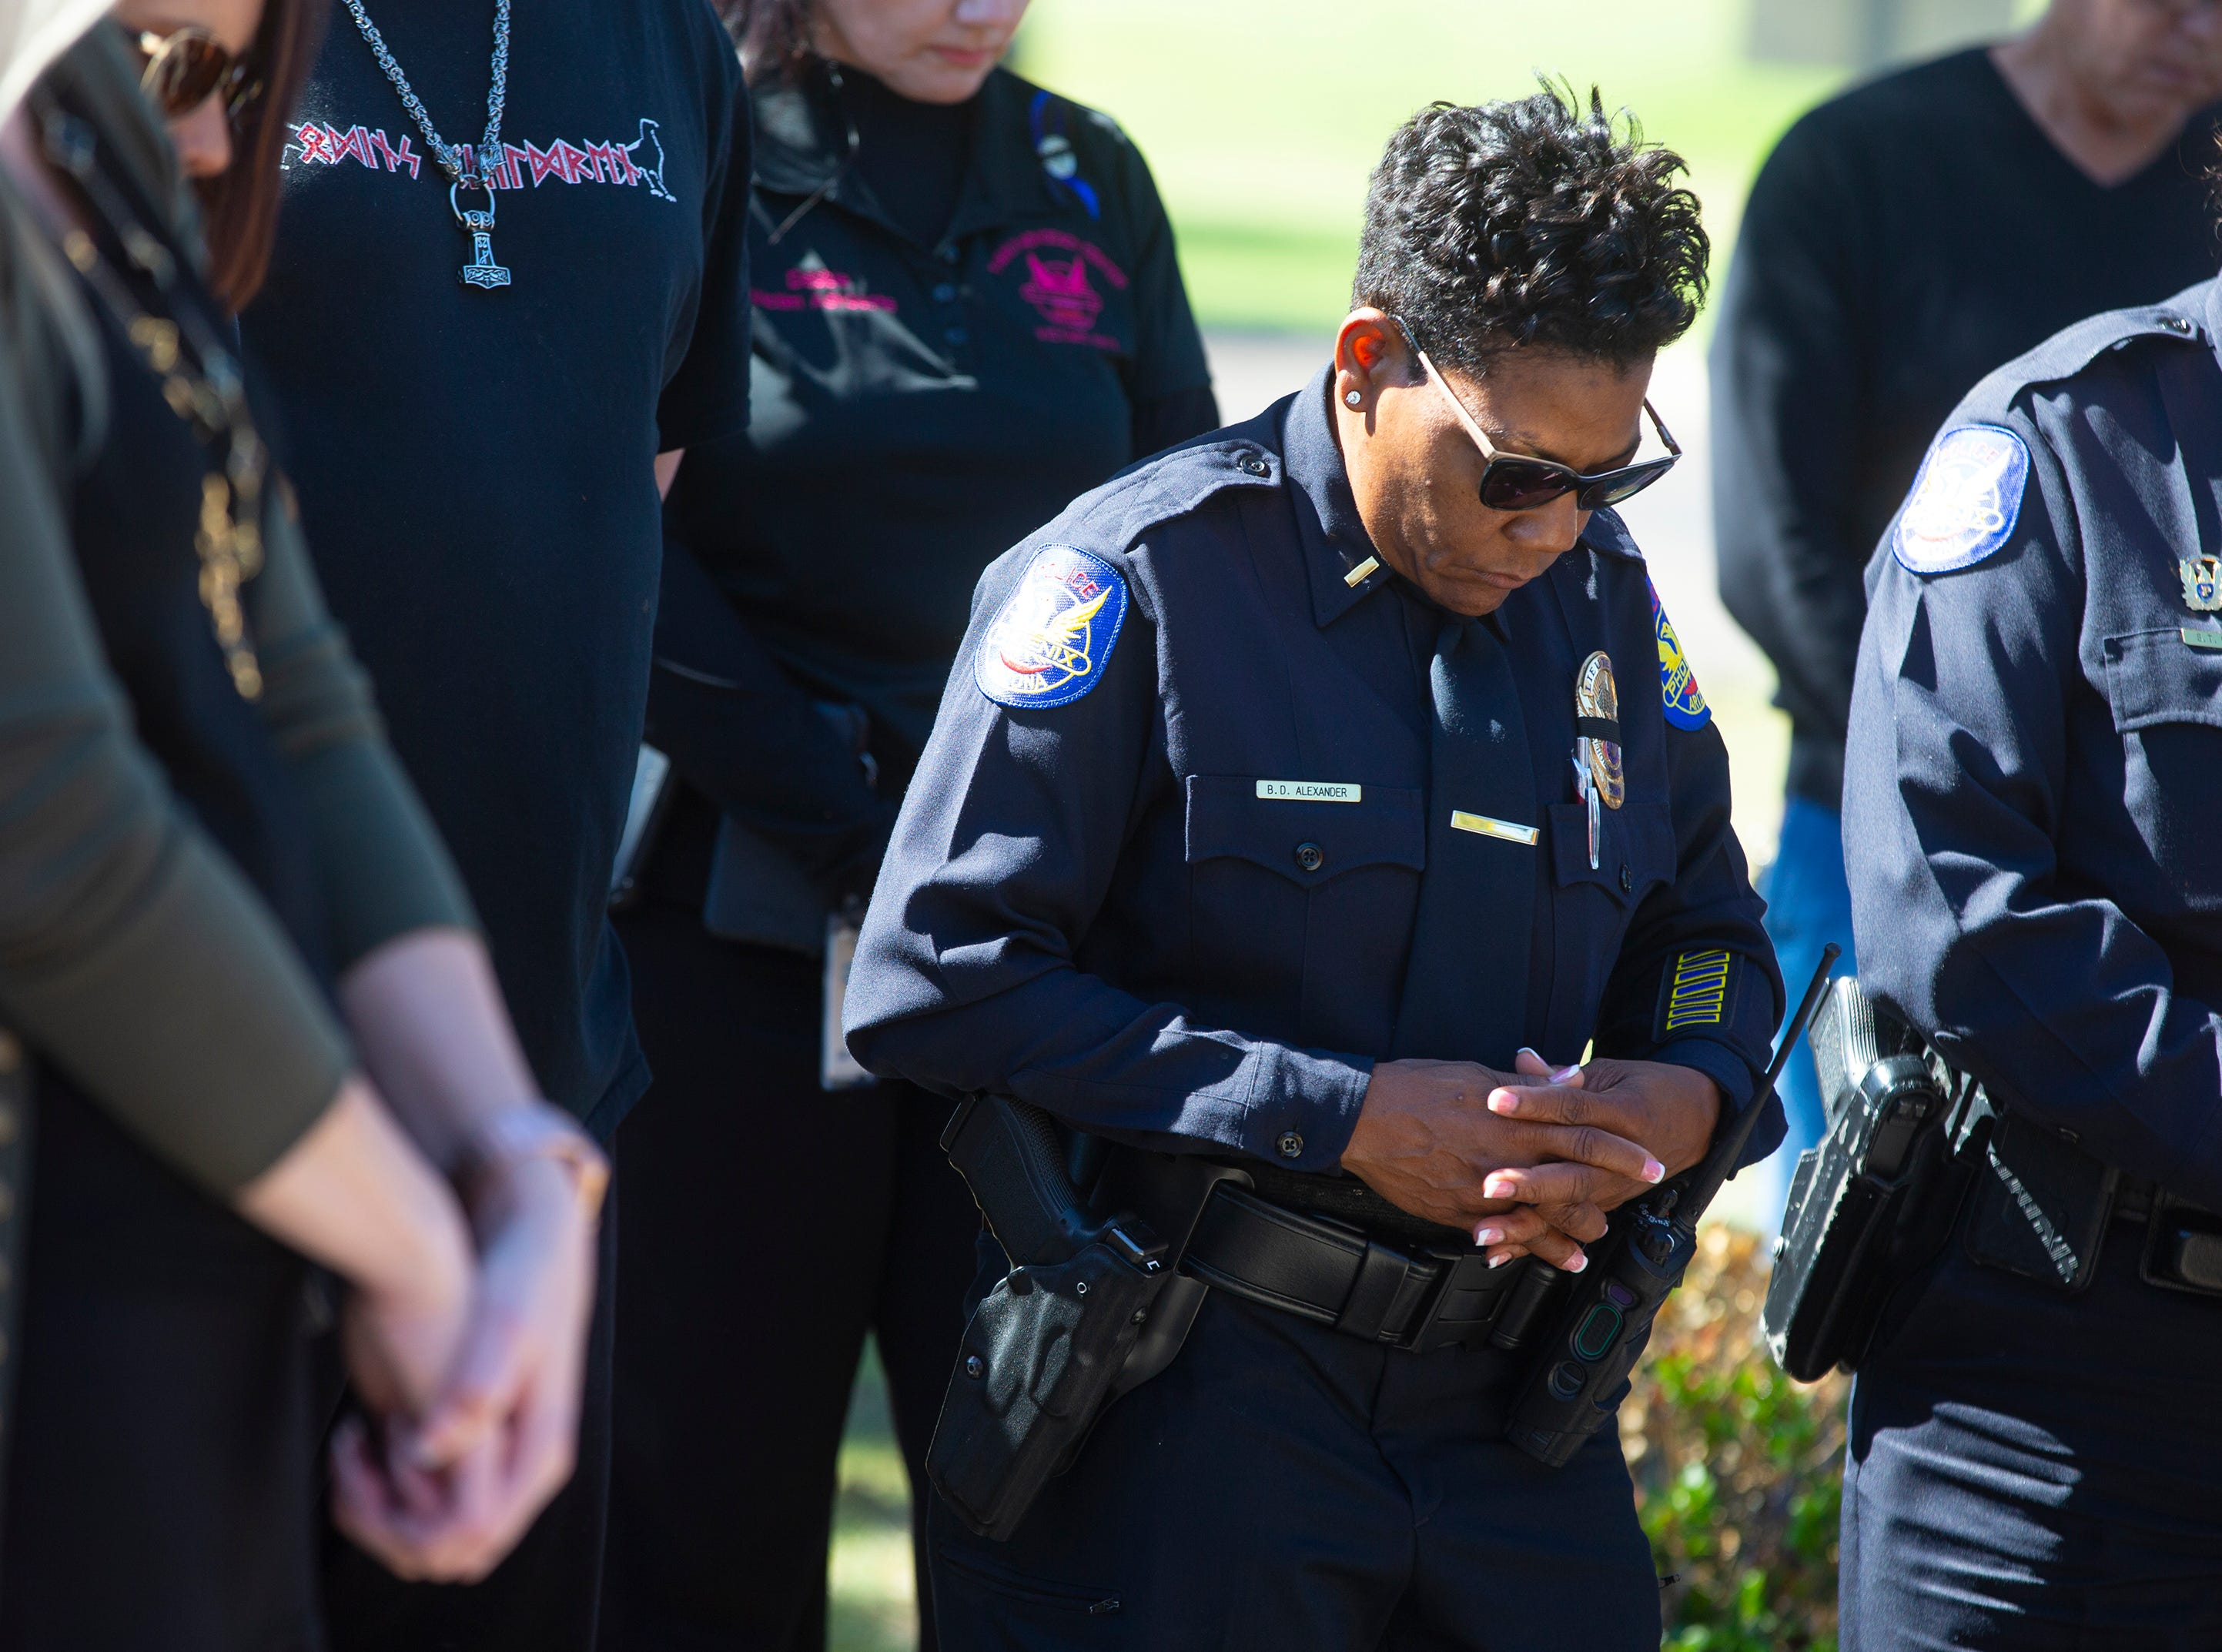 Lt. Barbara Alexander prays March 22, 2019, during a gathering outside Phoenix Police Maryvale Precinct for Officer Paul Rutherford, who was killed in a crash March 21.